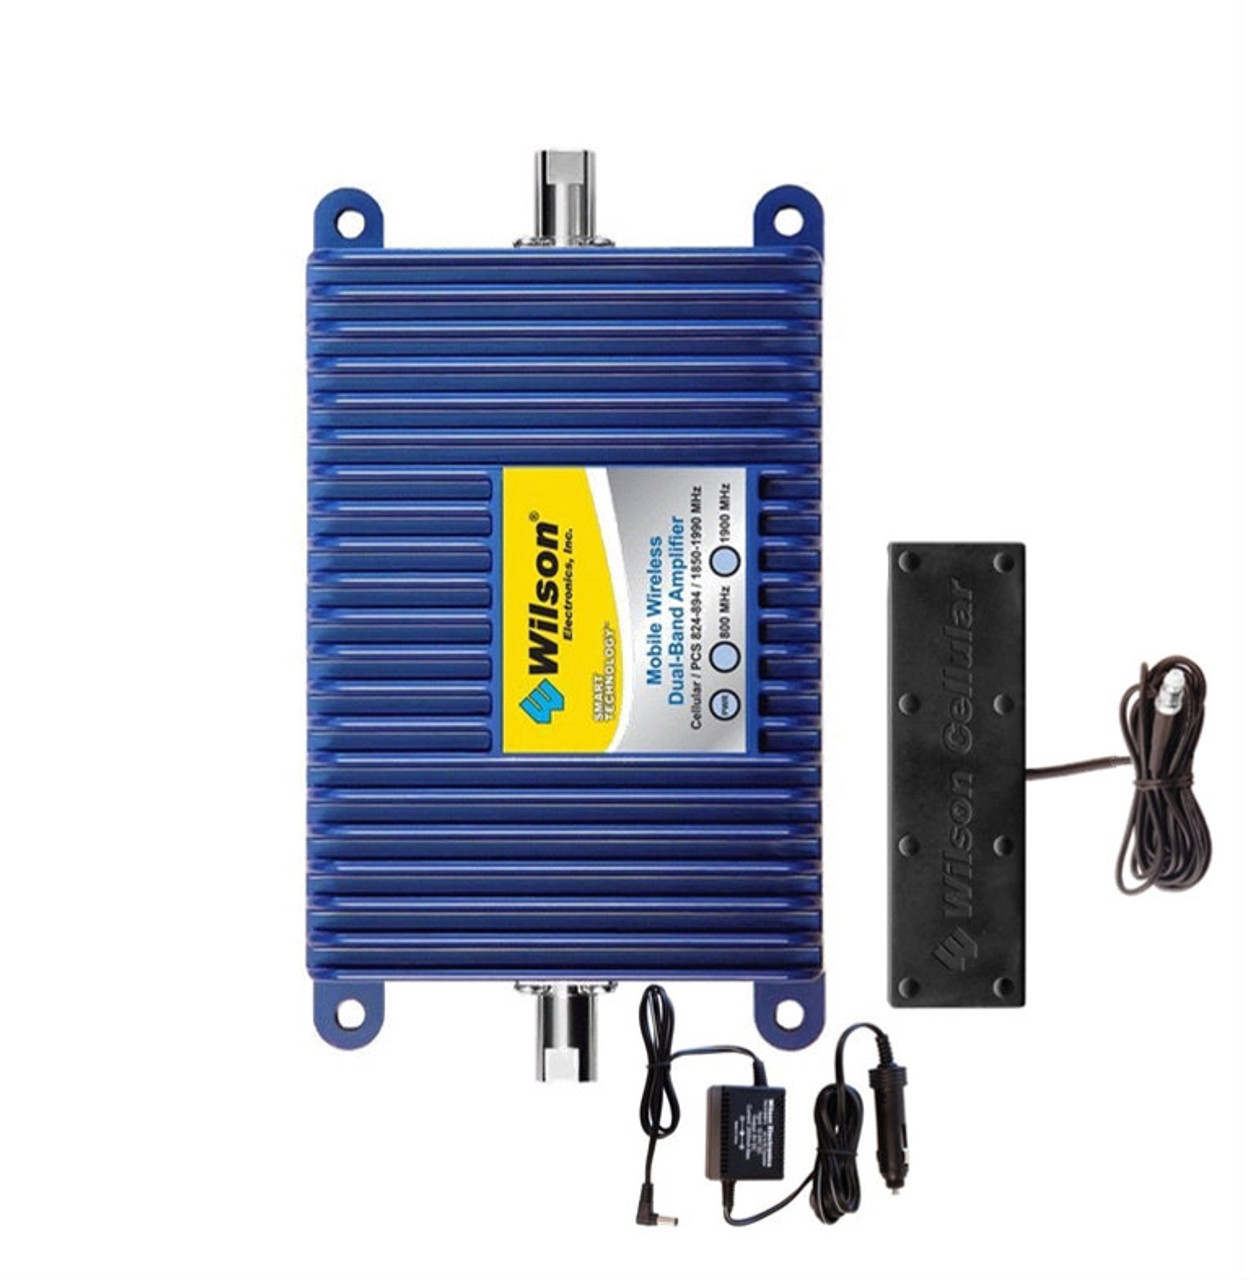 WILSON ELECTRONICS 859913 AC//DC 6-Volt Dual-Band Wireless Signal Booster Power Supply Consumer electronic